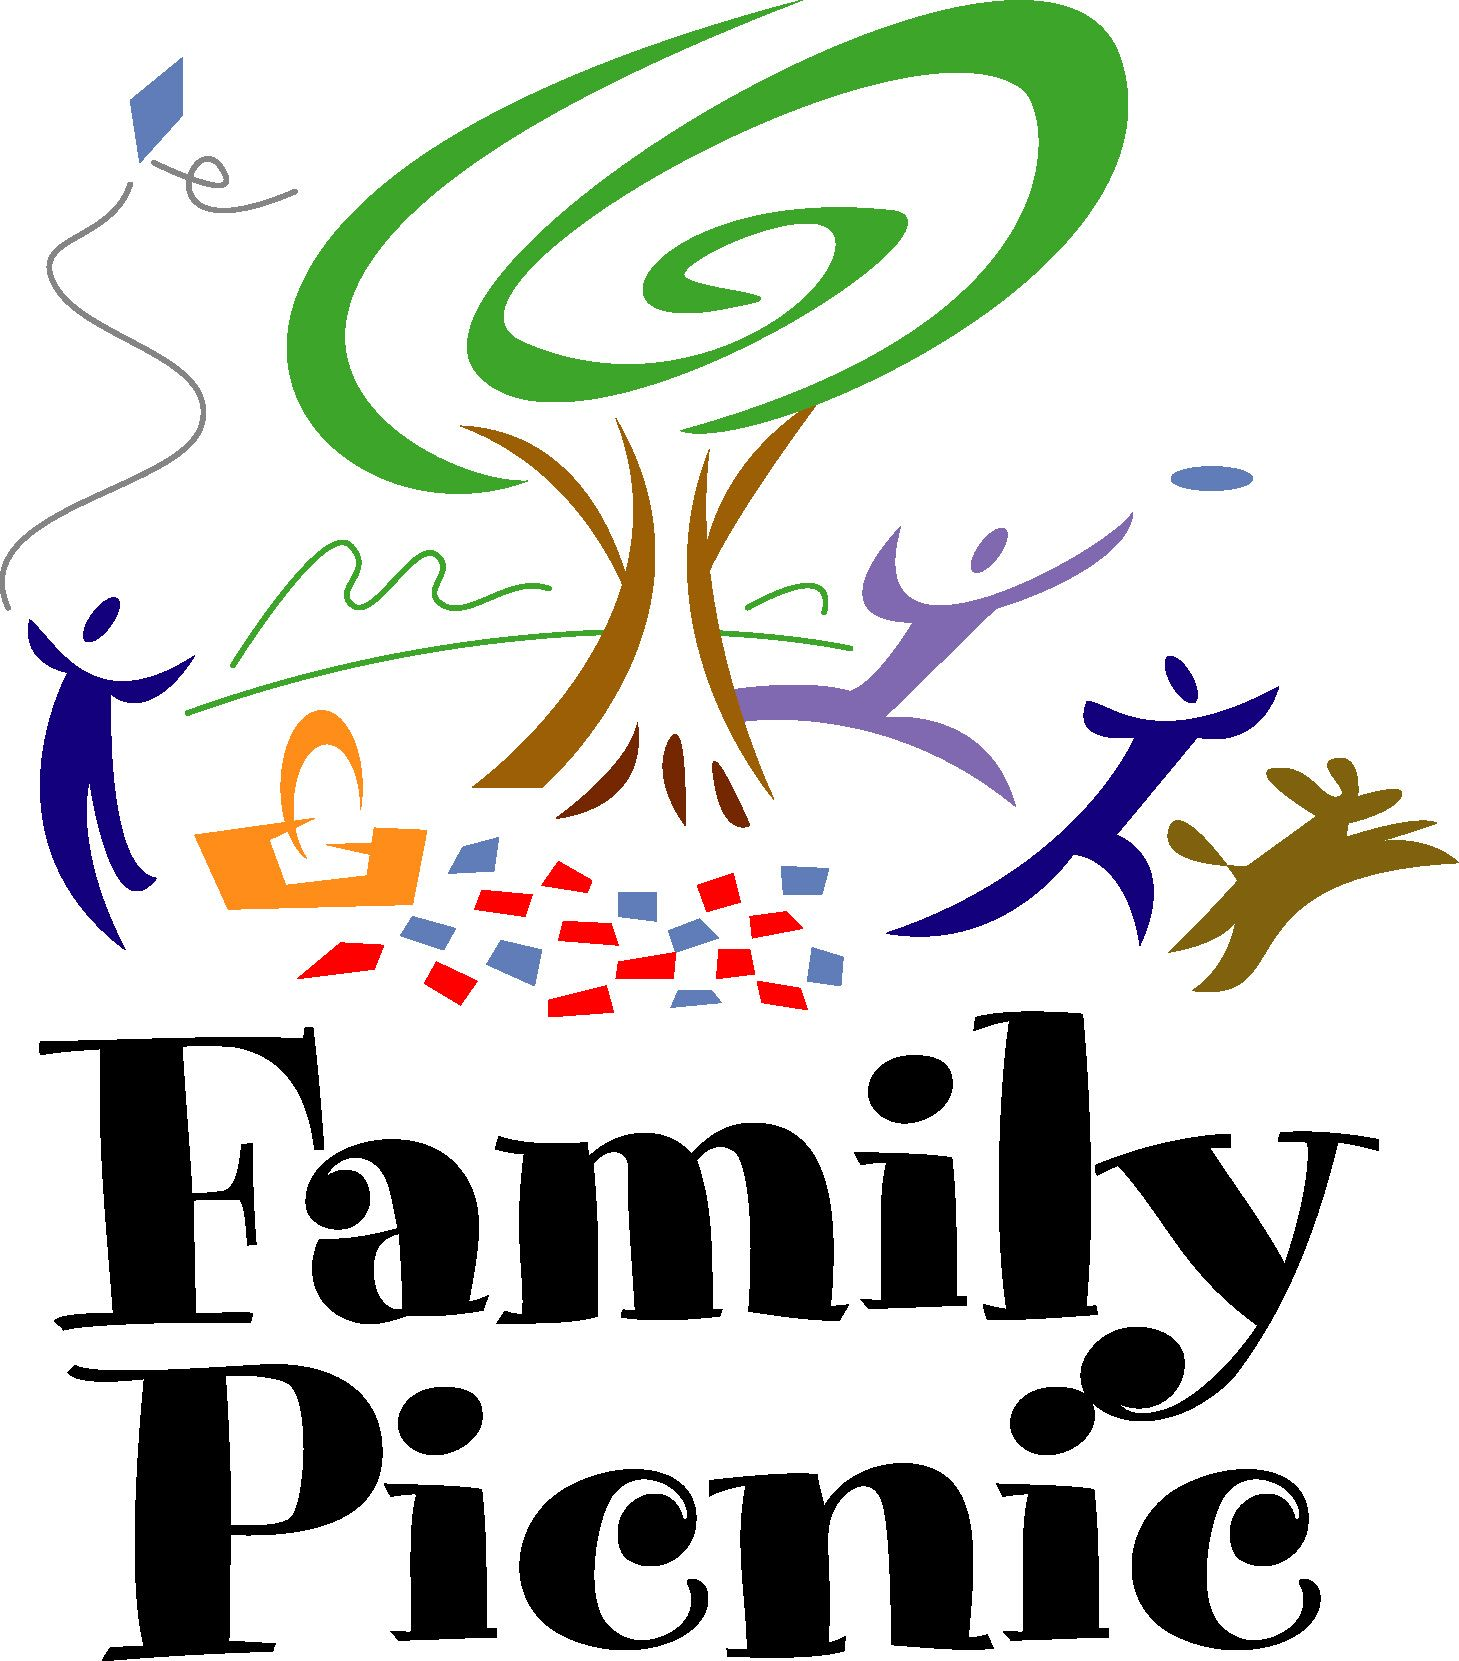 picnic clip art free lettering samples pinterest family picnic rh pinterest com family picnic clipart pictures family picnic clipart black and white